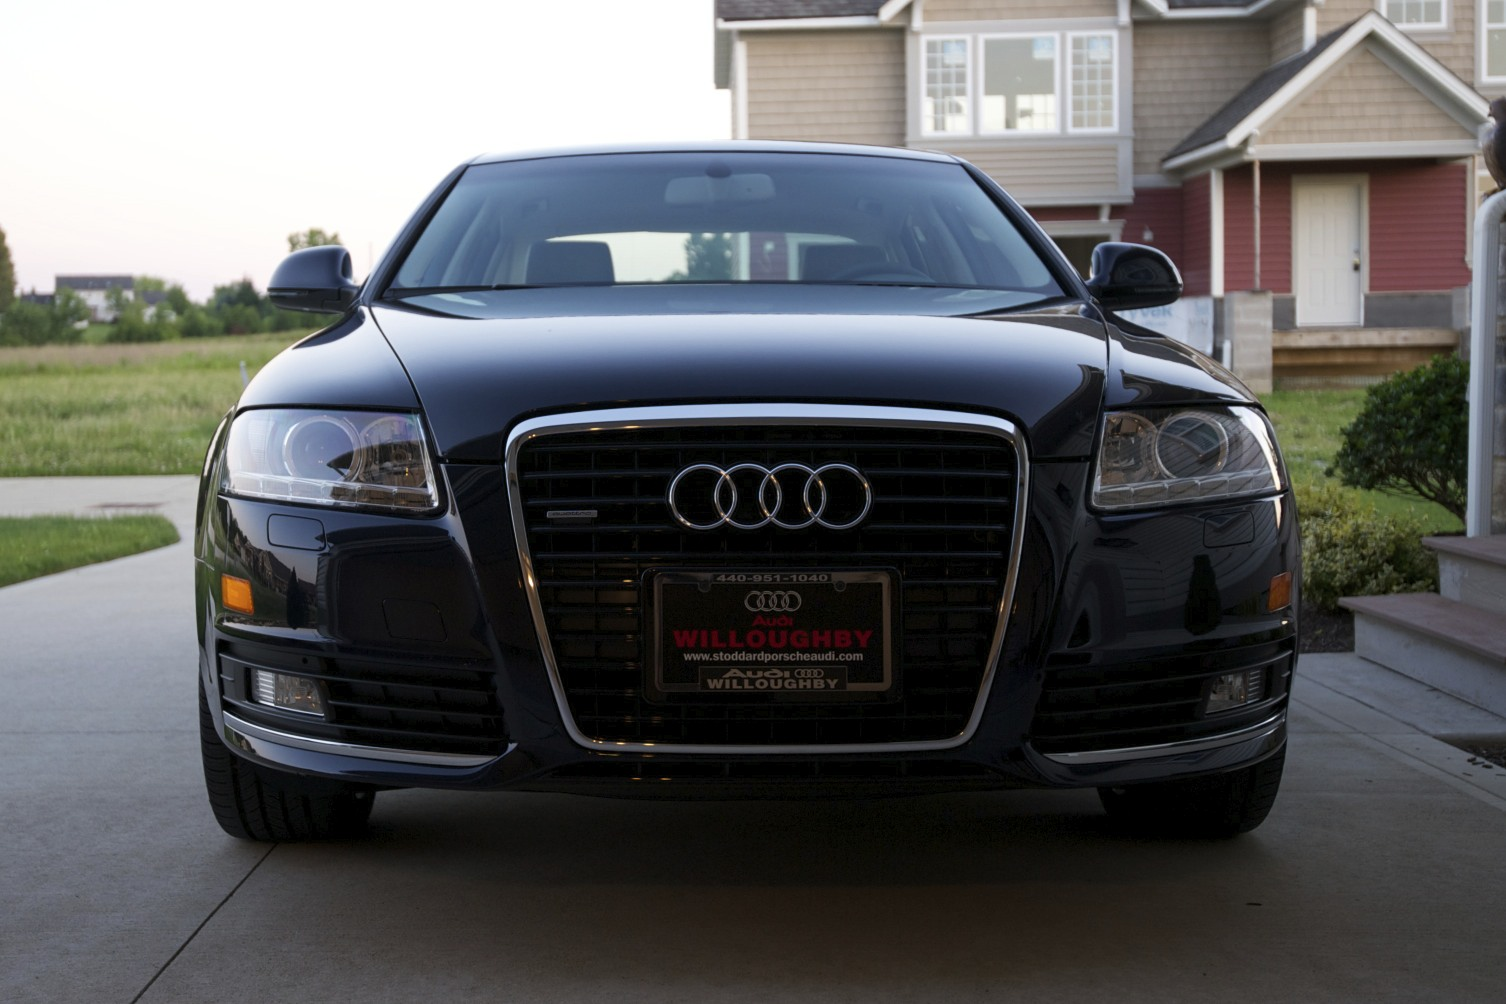 2010 Blue Audi A6 3.0T Stasis picture, mods, upgrades